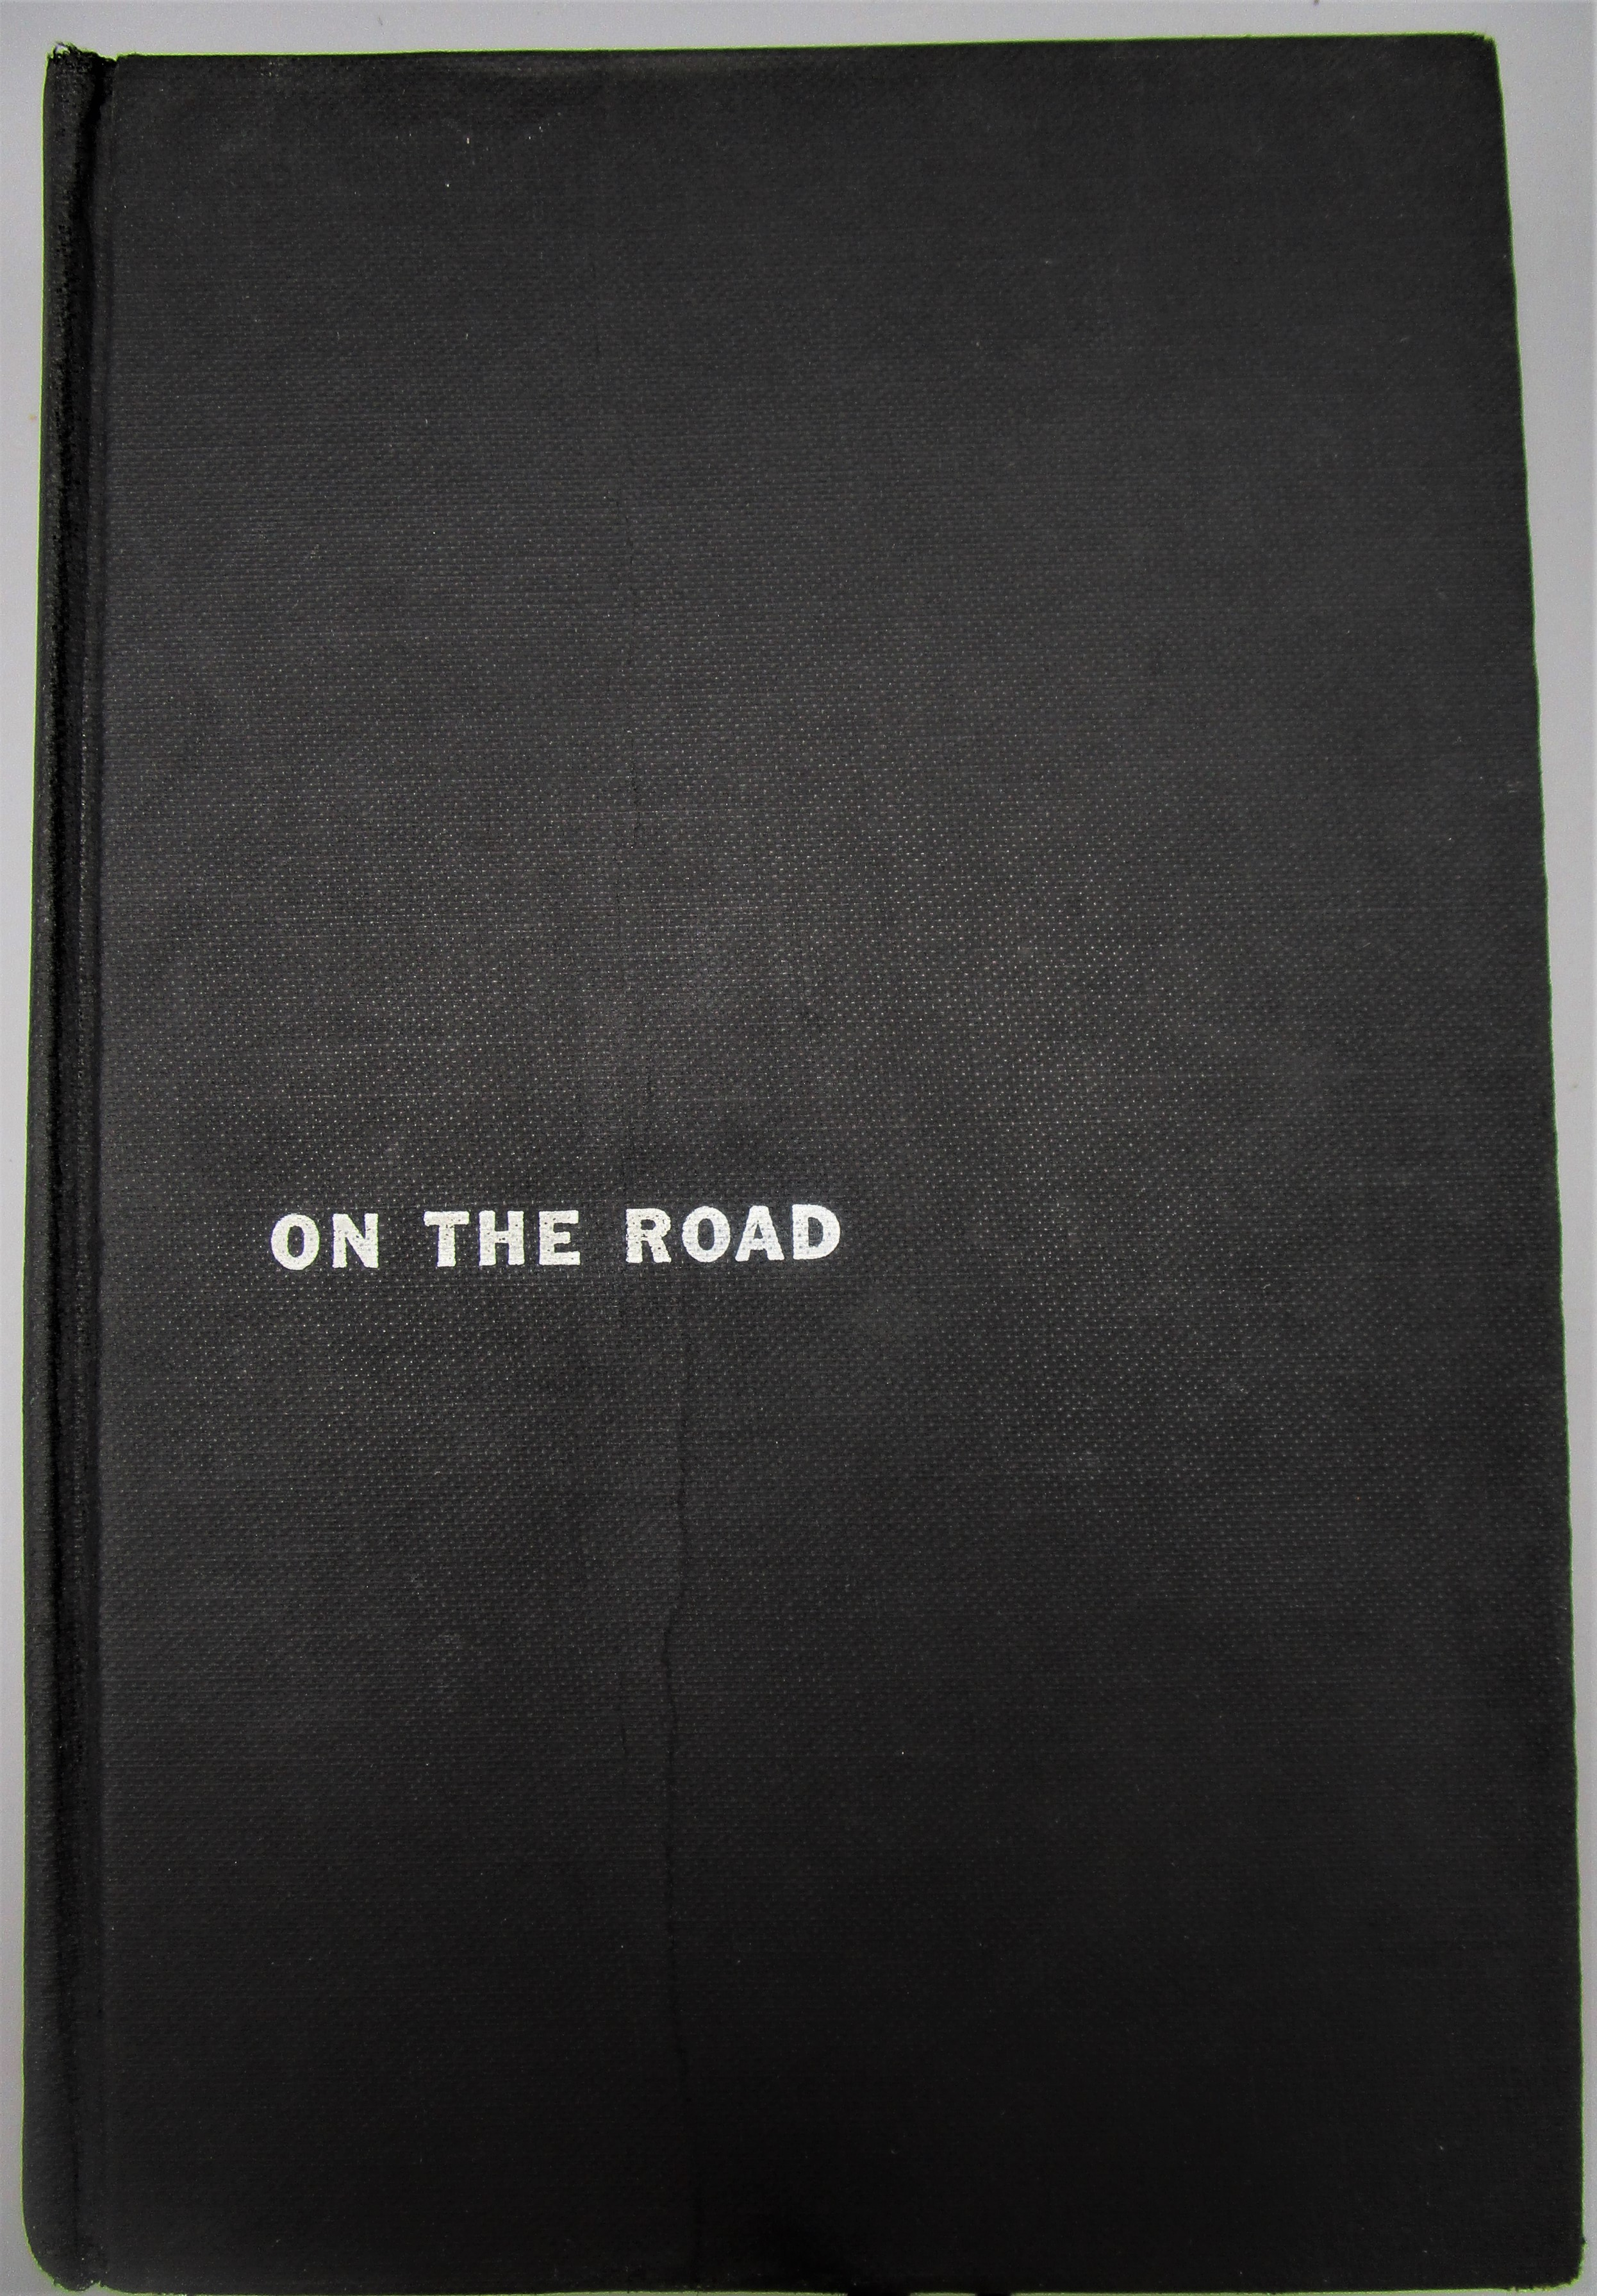 ON THE ROAD, by Jack Kerouac - 1957